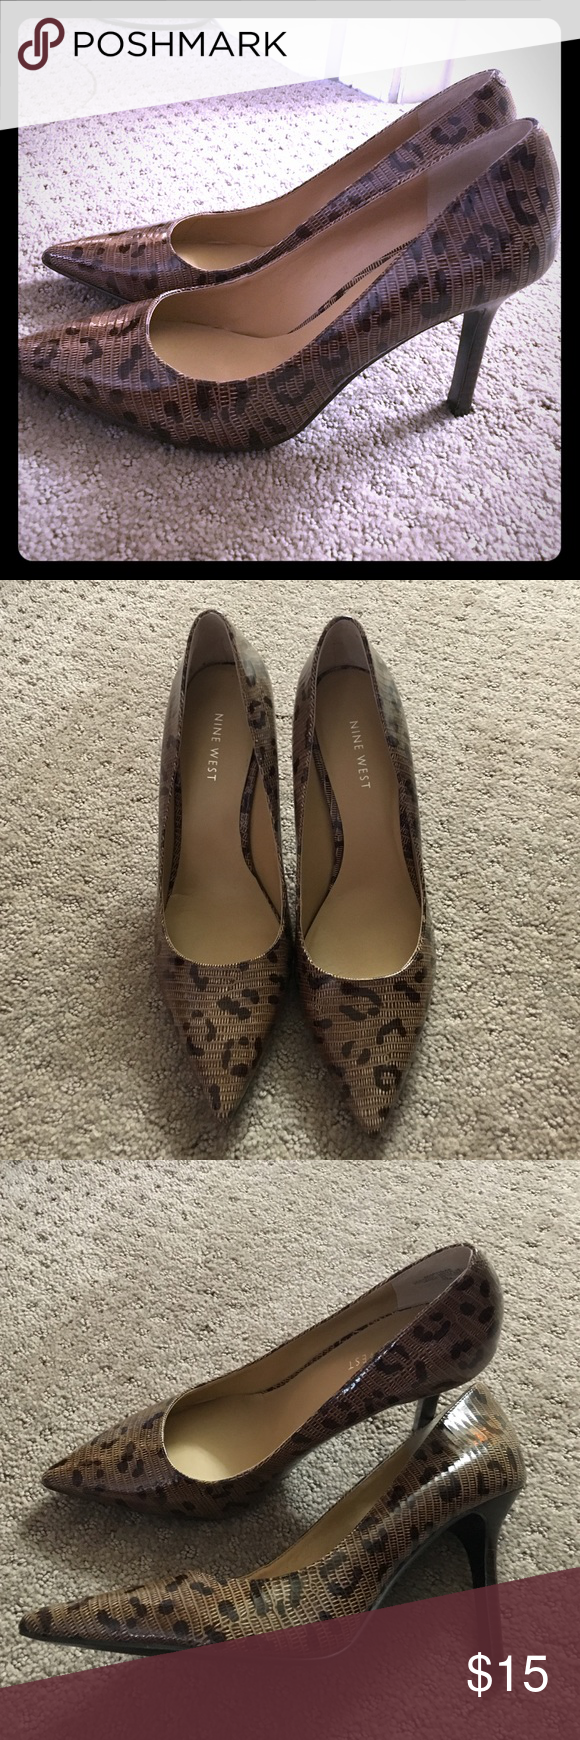 💃🏽Leopard print high heeled shoes Super cute shoes with a little sass. Wear to work or for drinks with friends. Think cute jeans and top and these shoes! Size 7. Nine West. Worn once. Like new! Nine West Shoes Heels